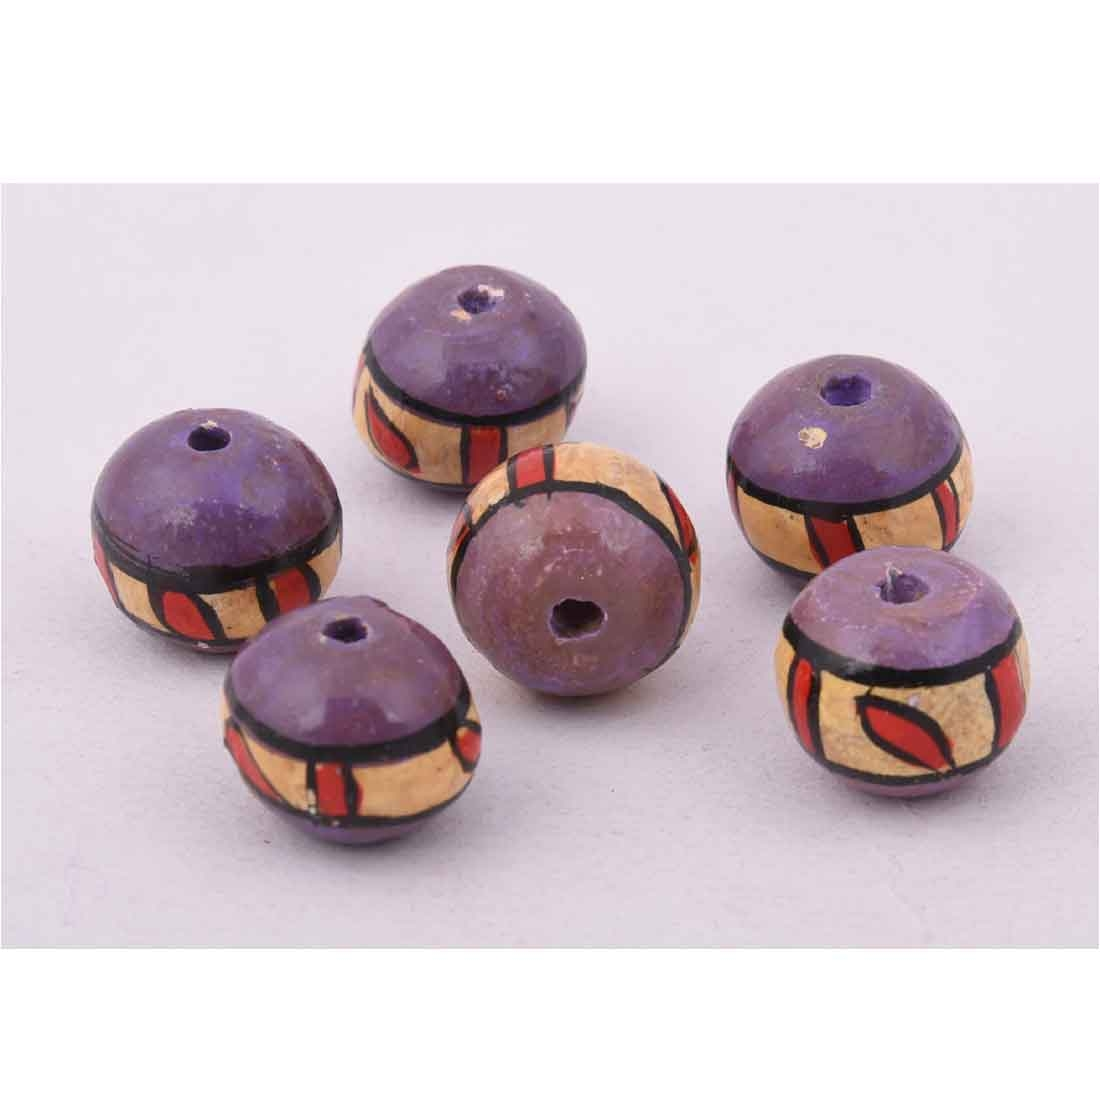 Beads India 1700086 Handcrafted Wooden Beads/Discounts Above 500 pcs